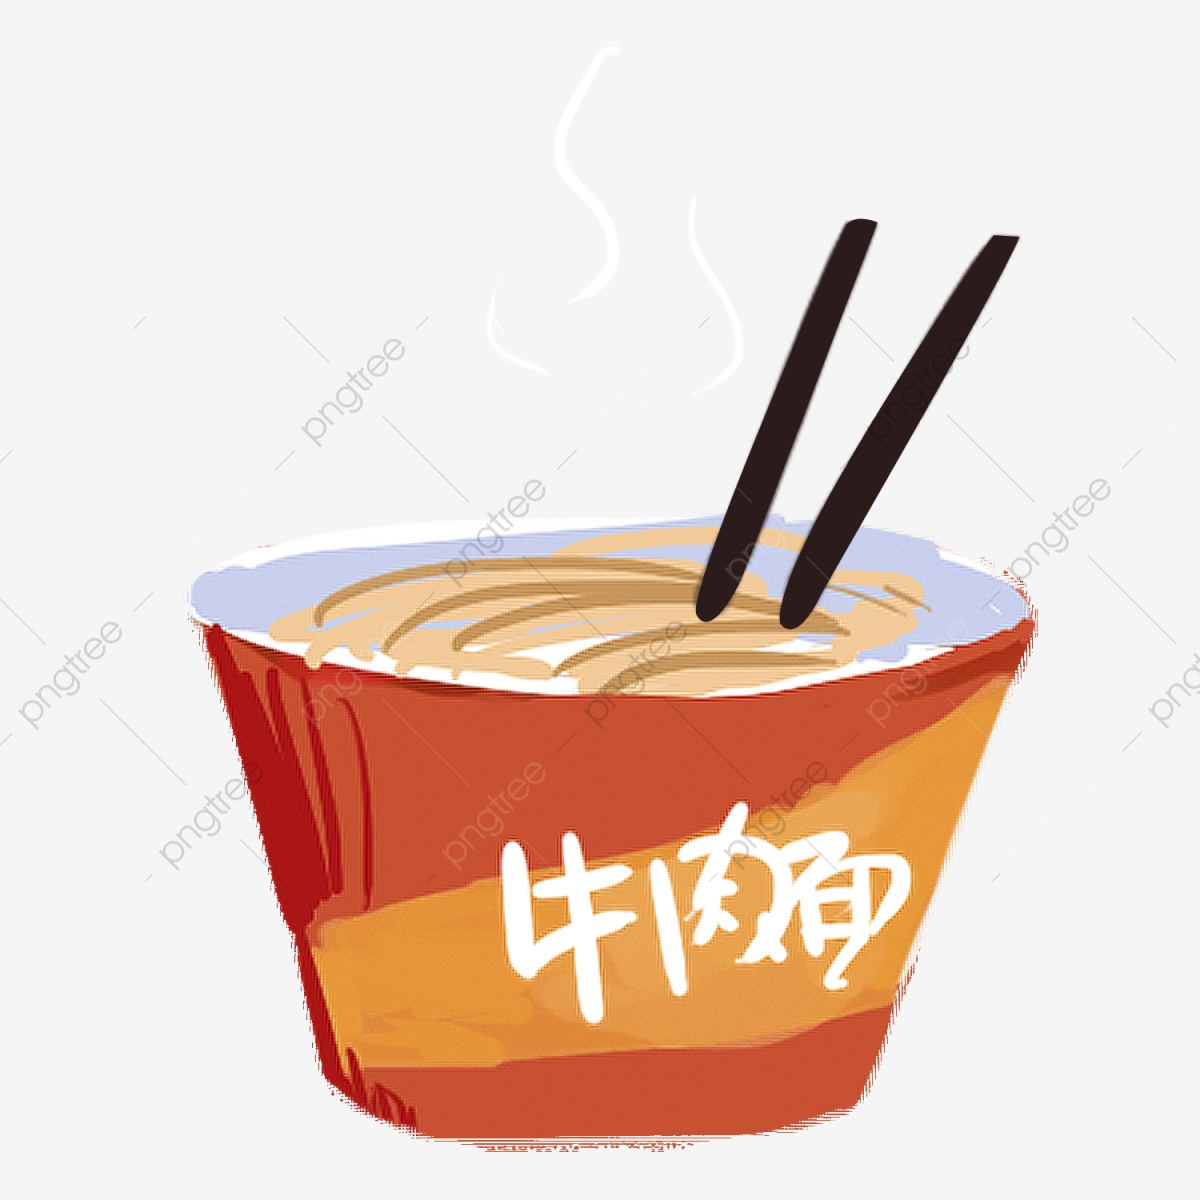 Chinese Noodles Cartoon Fast Food Cartoon Baking Noodles.